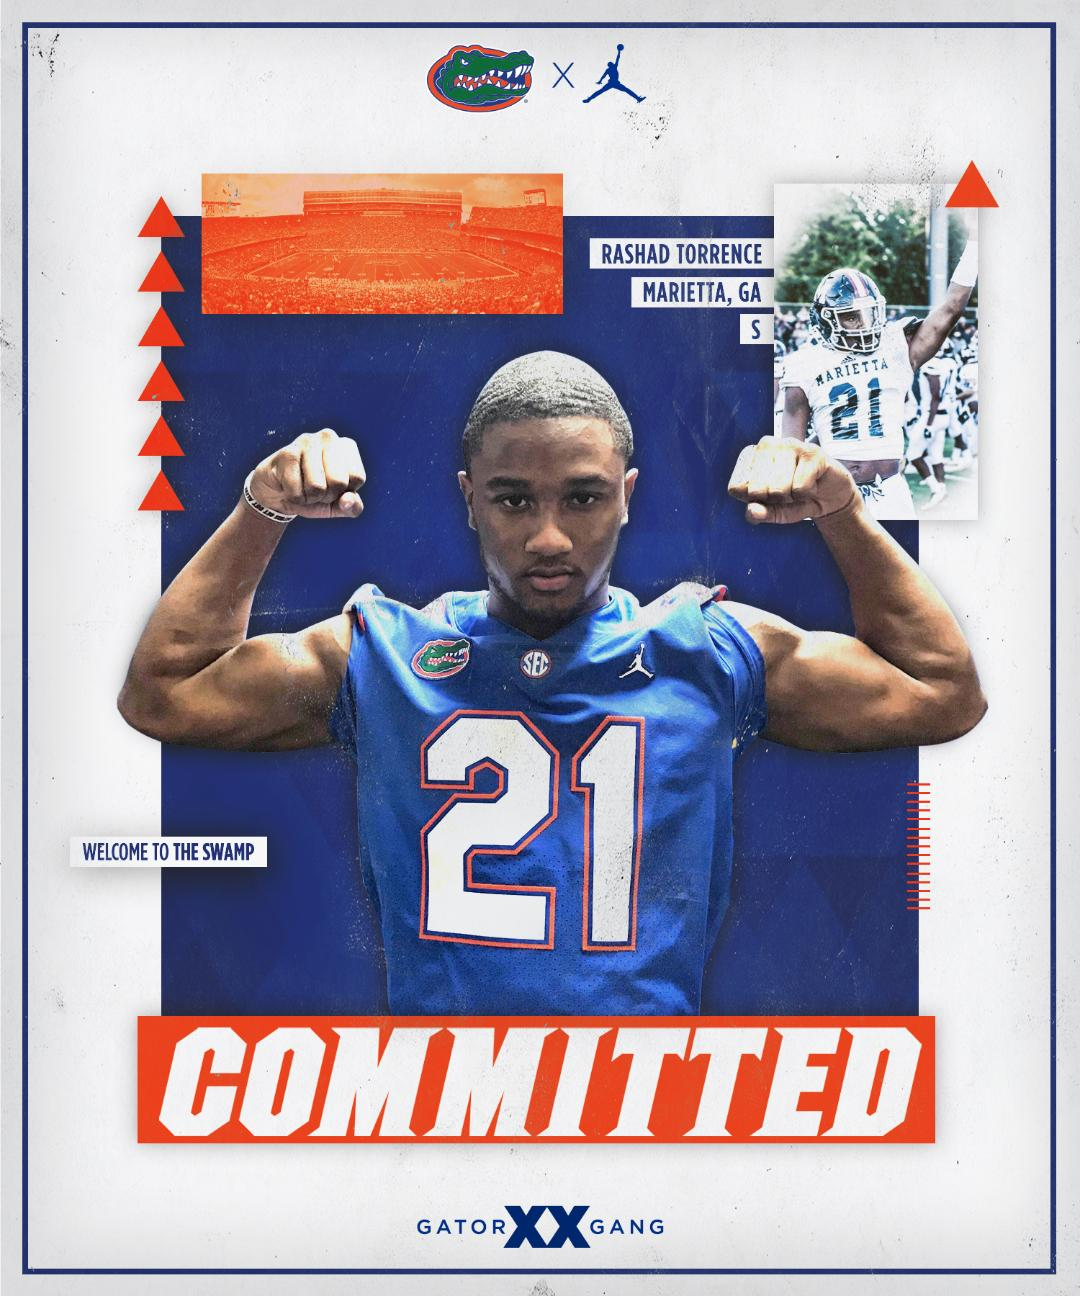 Gators Land Big-Time Out-Of-State Star